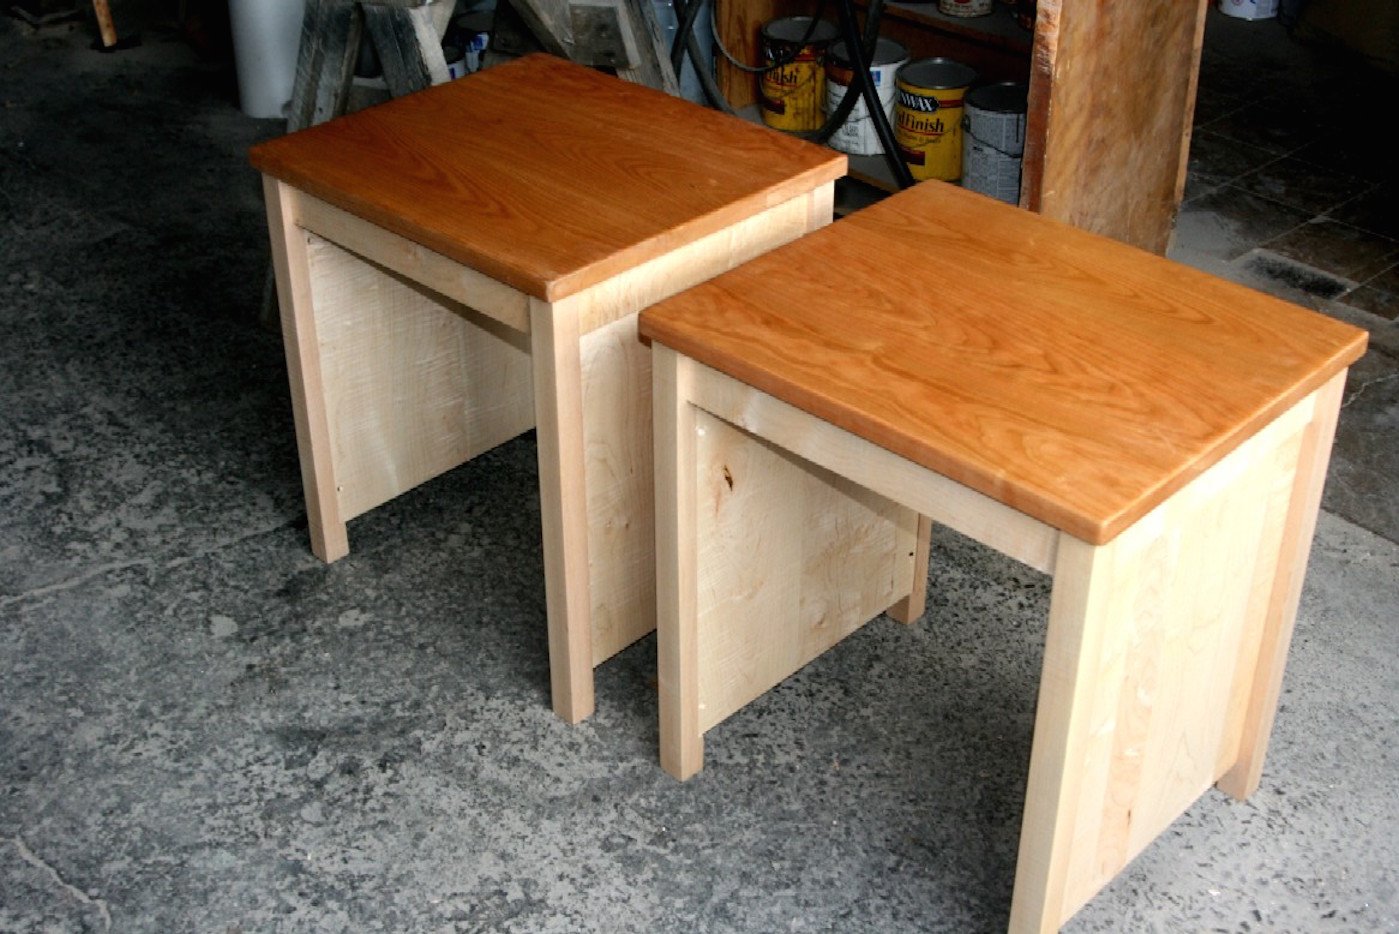 2 Piece Cherry w/ Maple End Tables